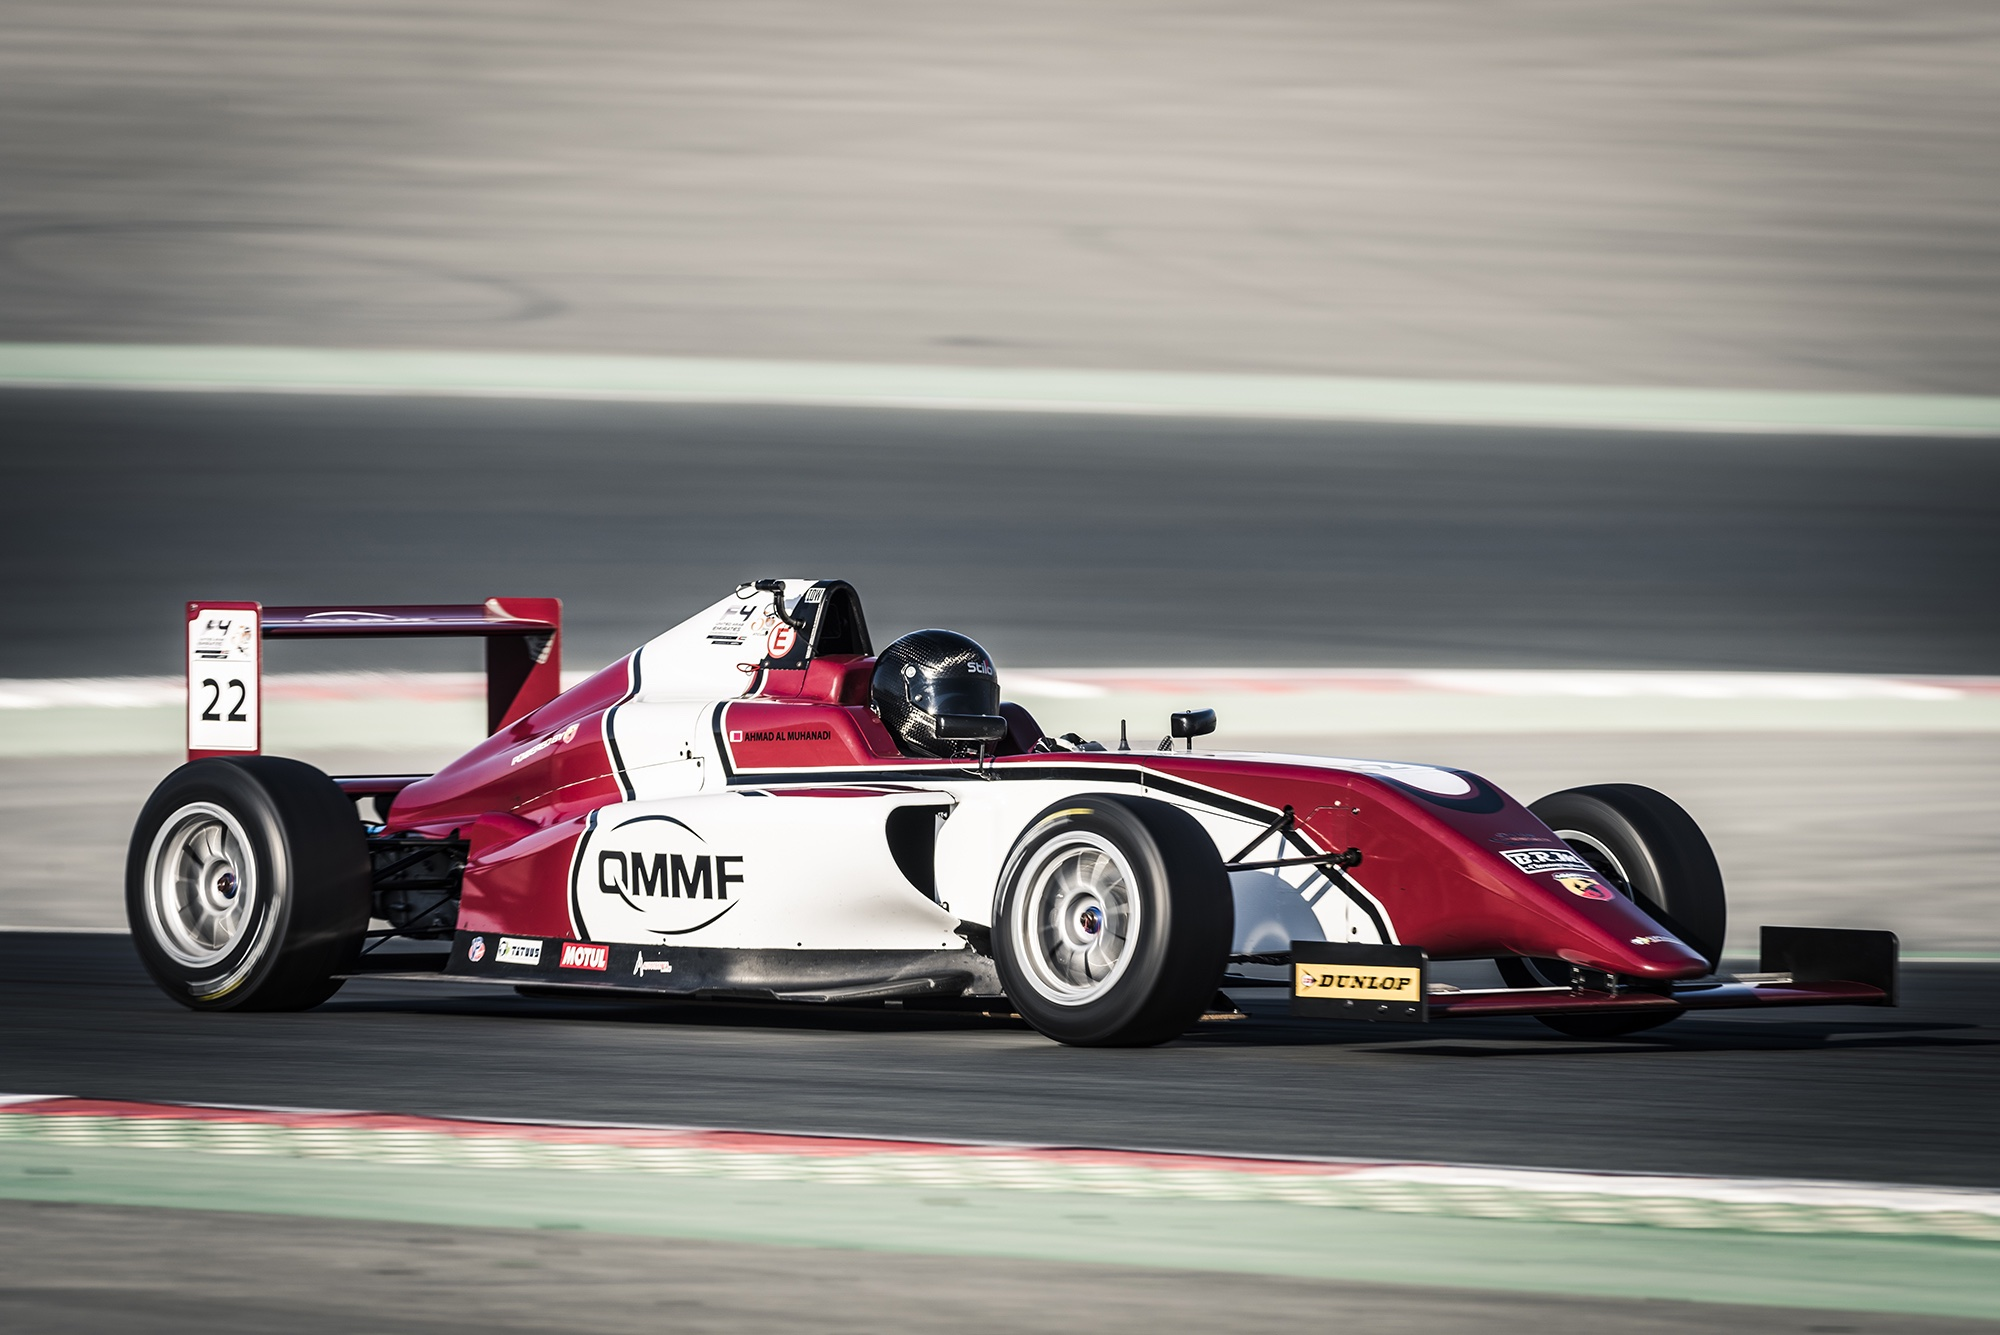 2016 10 30 Racing Second Round F4 Dubai 22 of 34